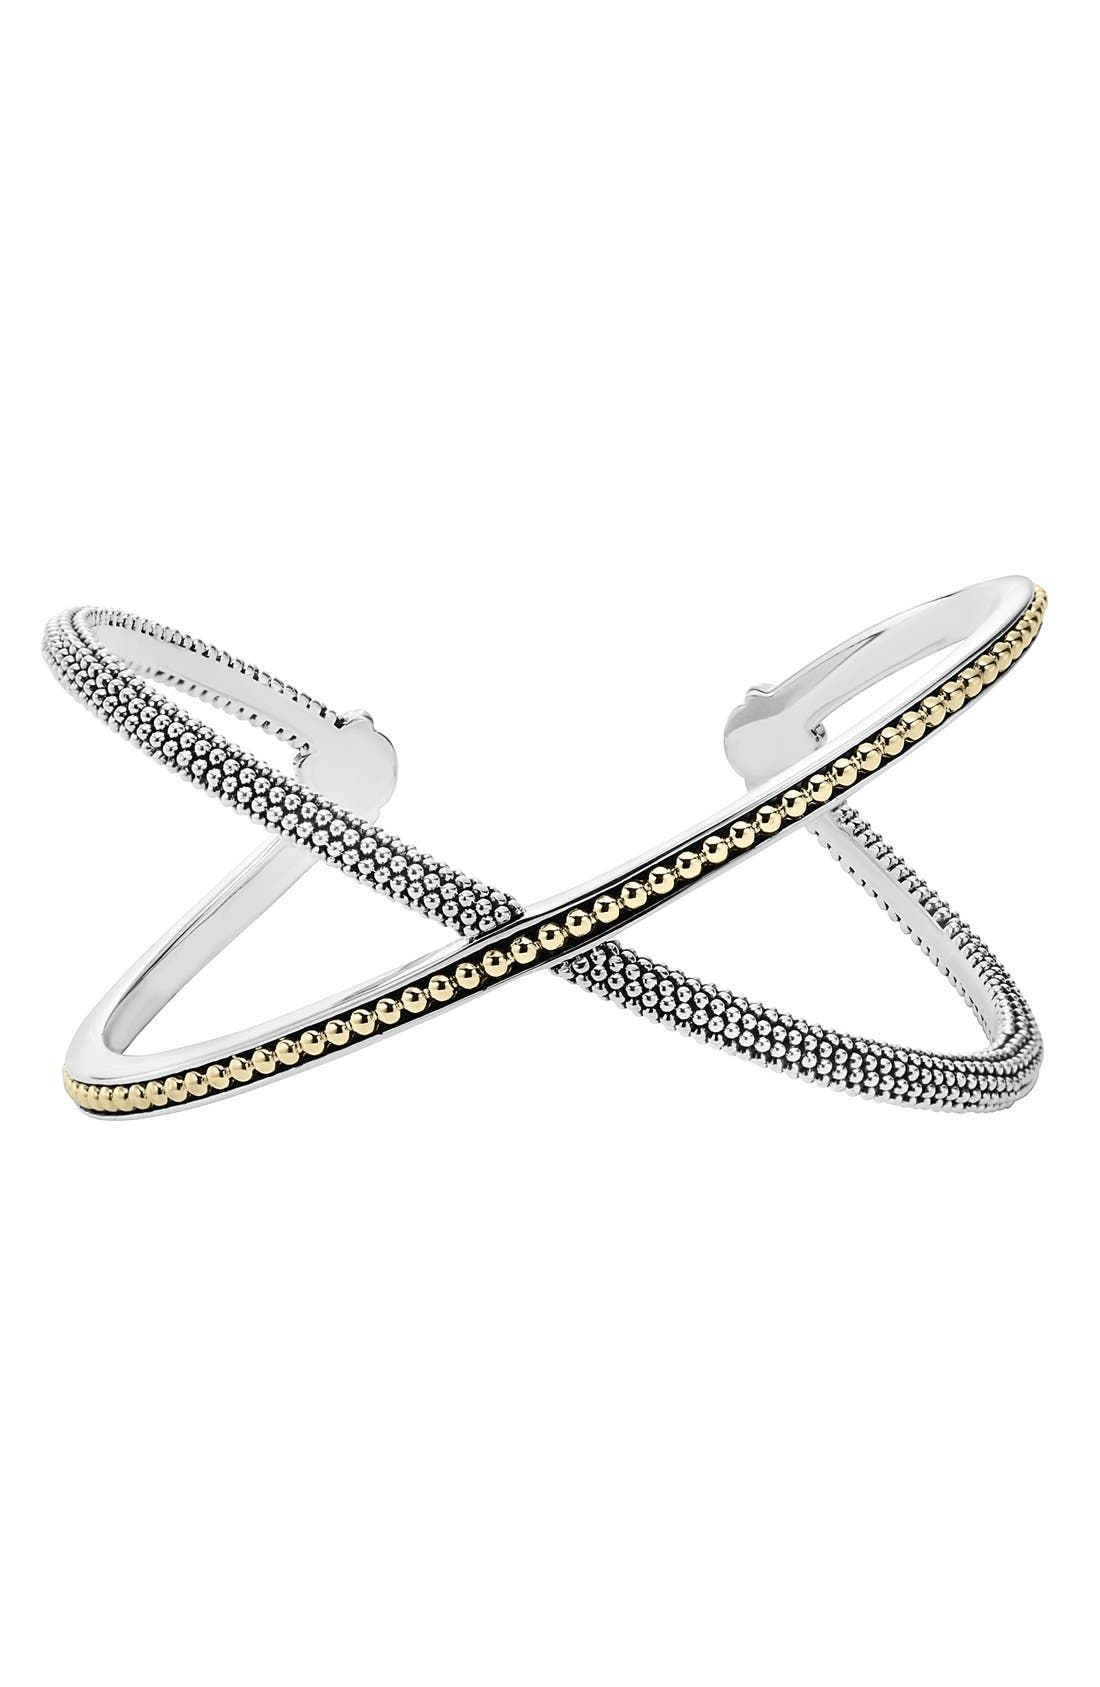 Infinity Cuff Bracelet,                         Main,                         color, Silver/ Gold